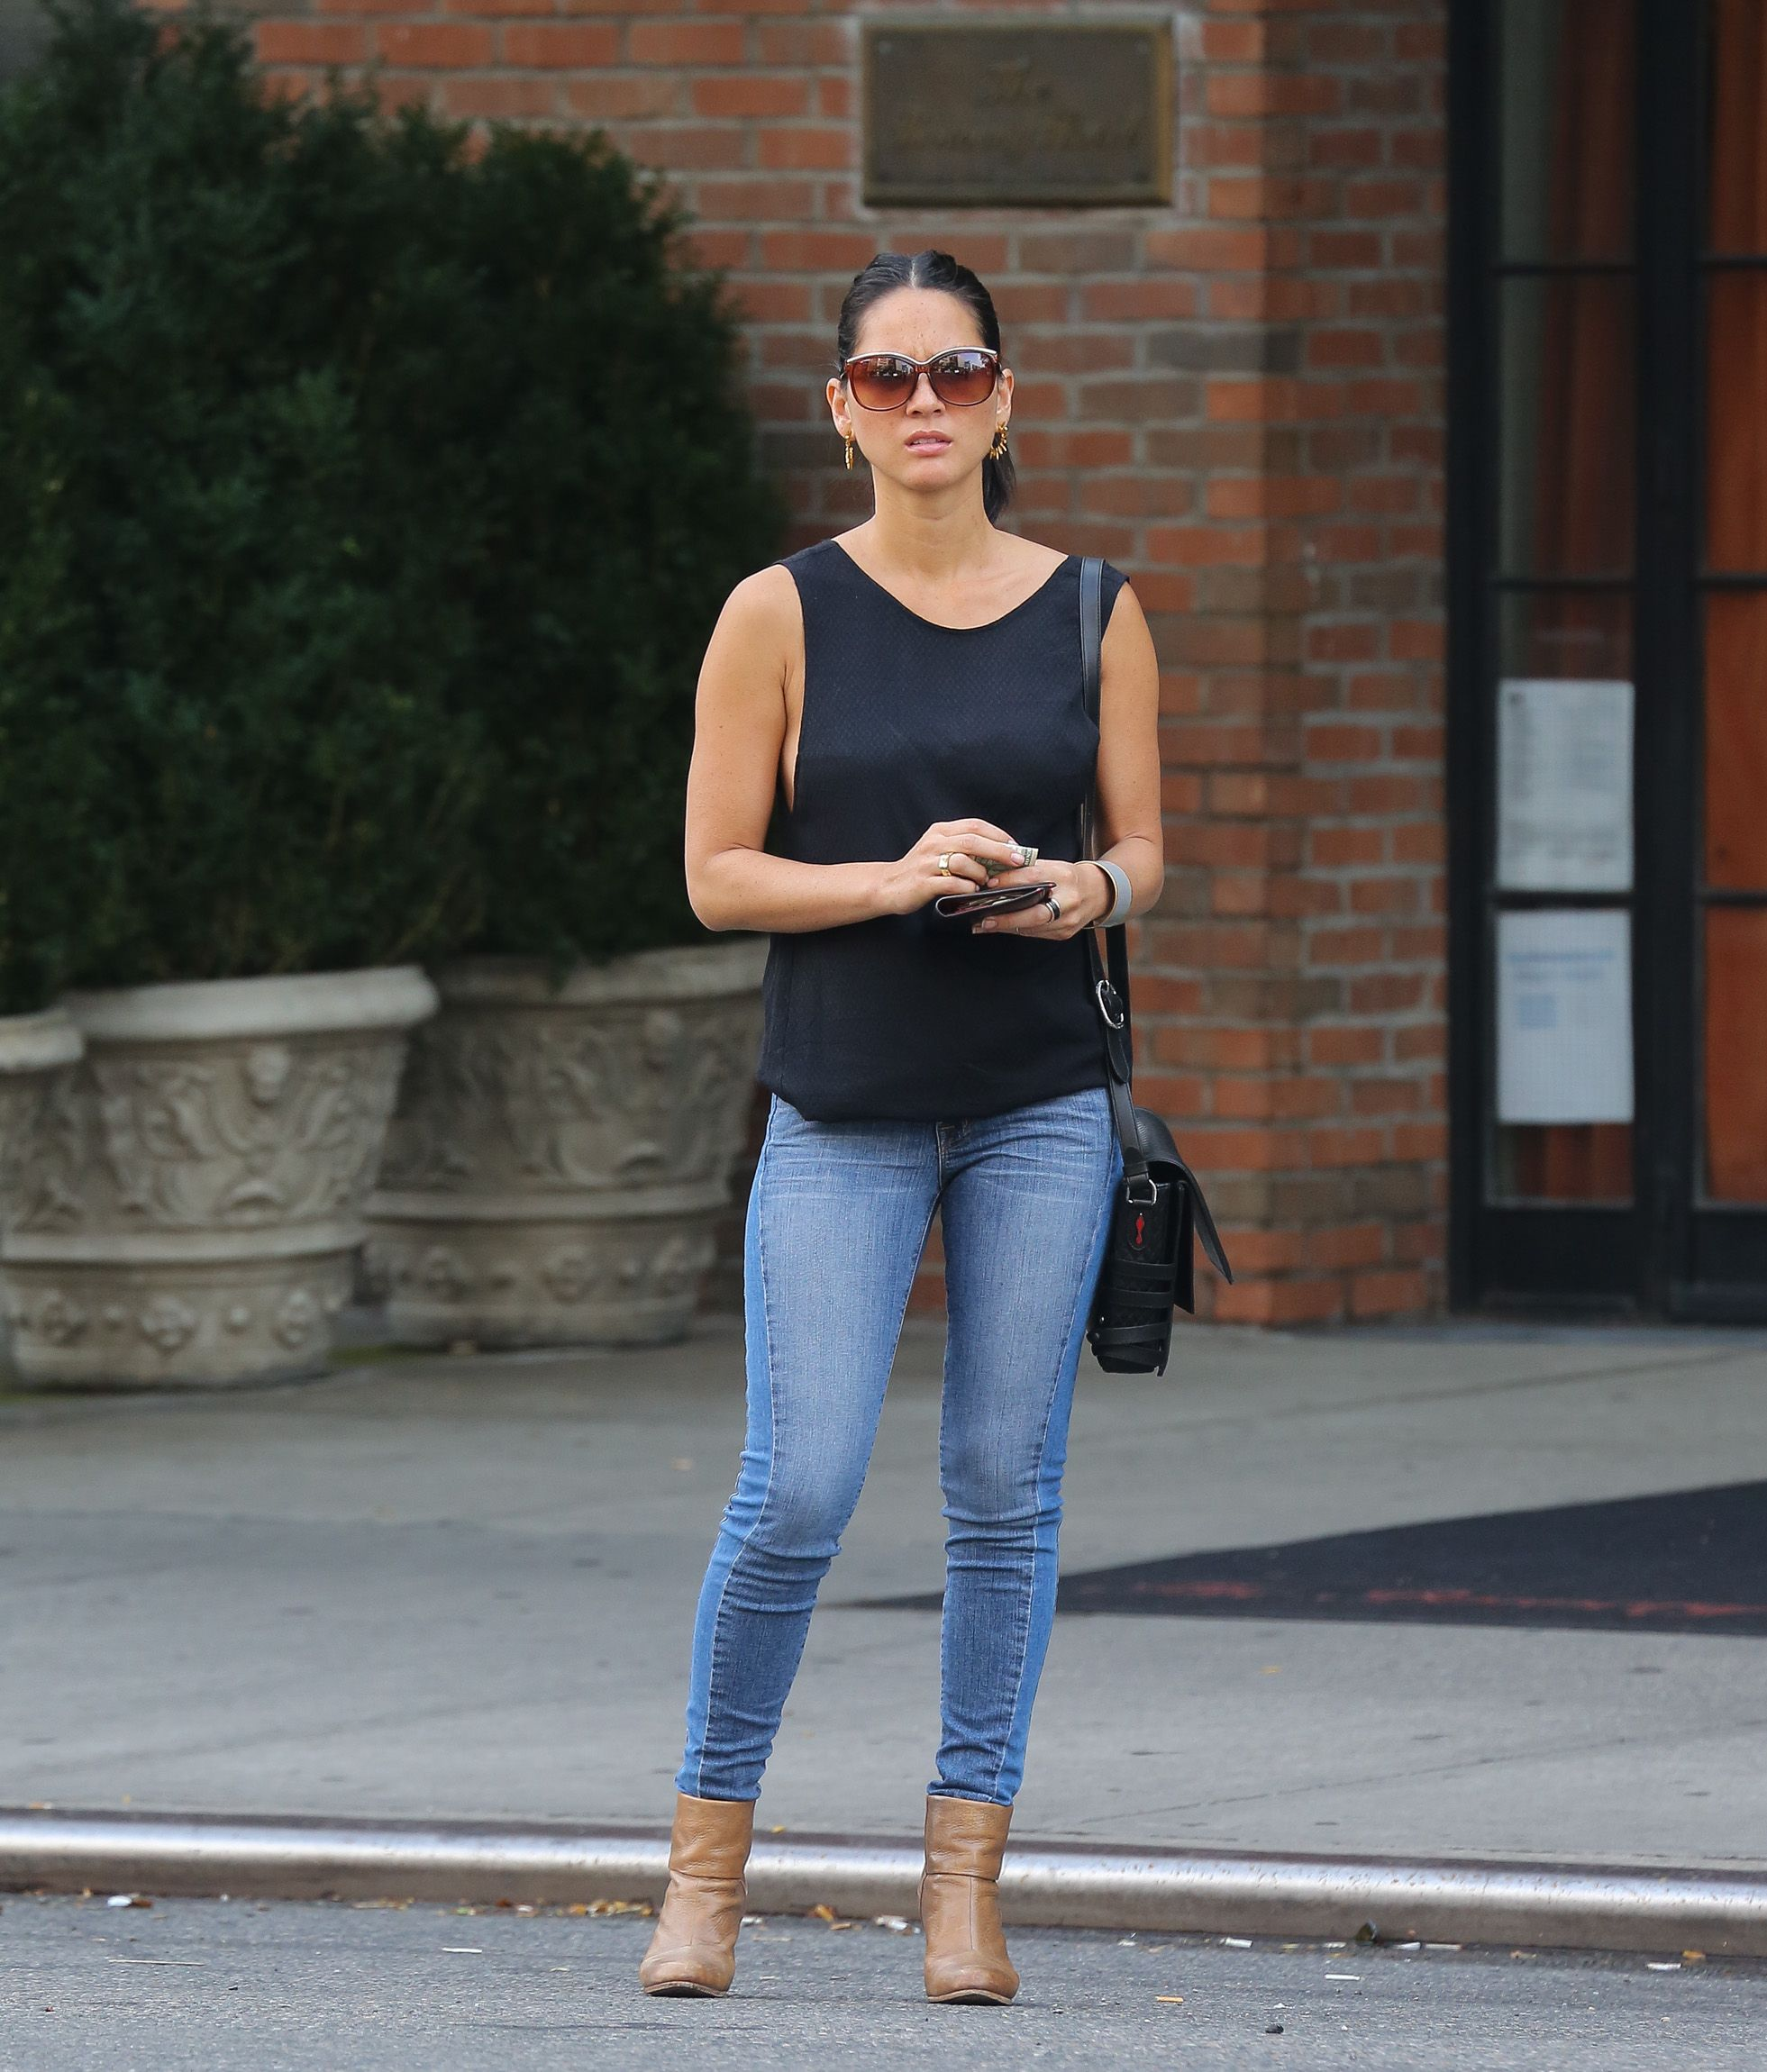 olivia munn hot in jeans and tank top 01 � gotceleb